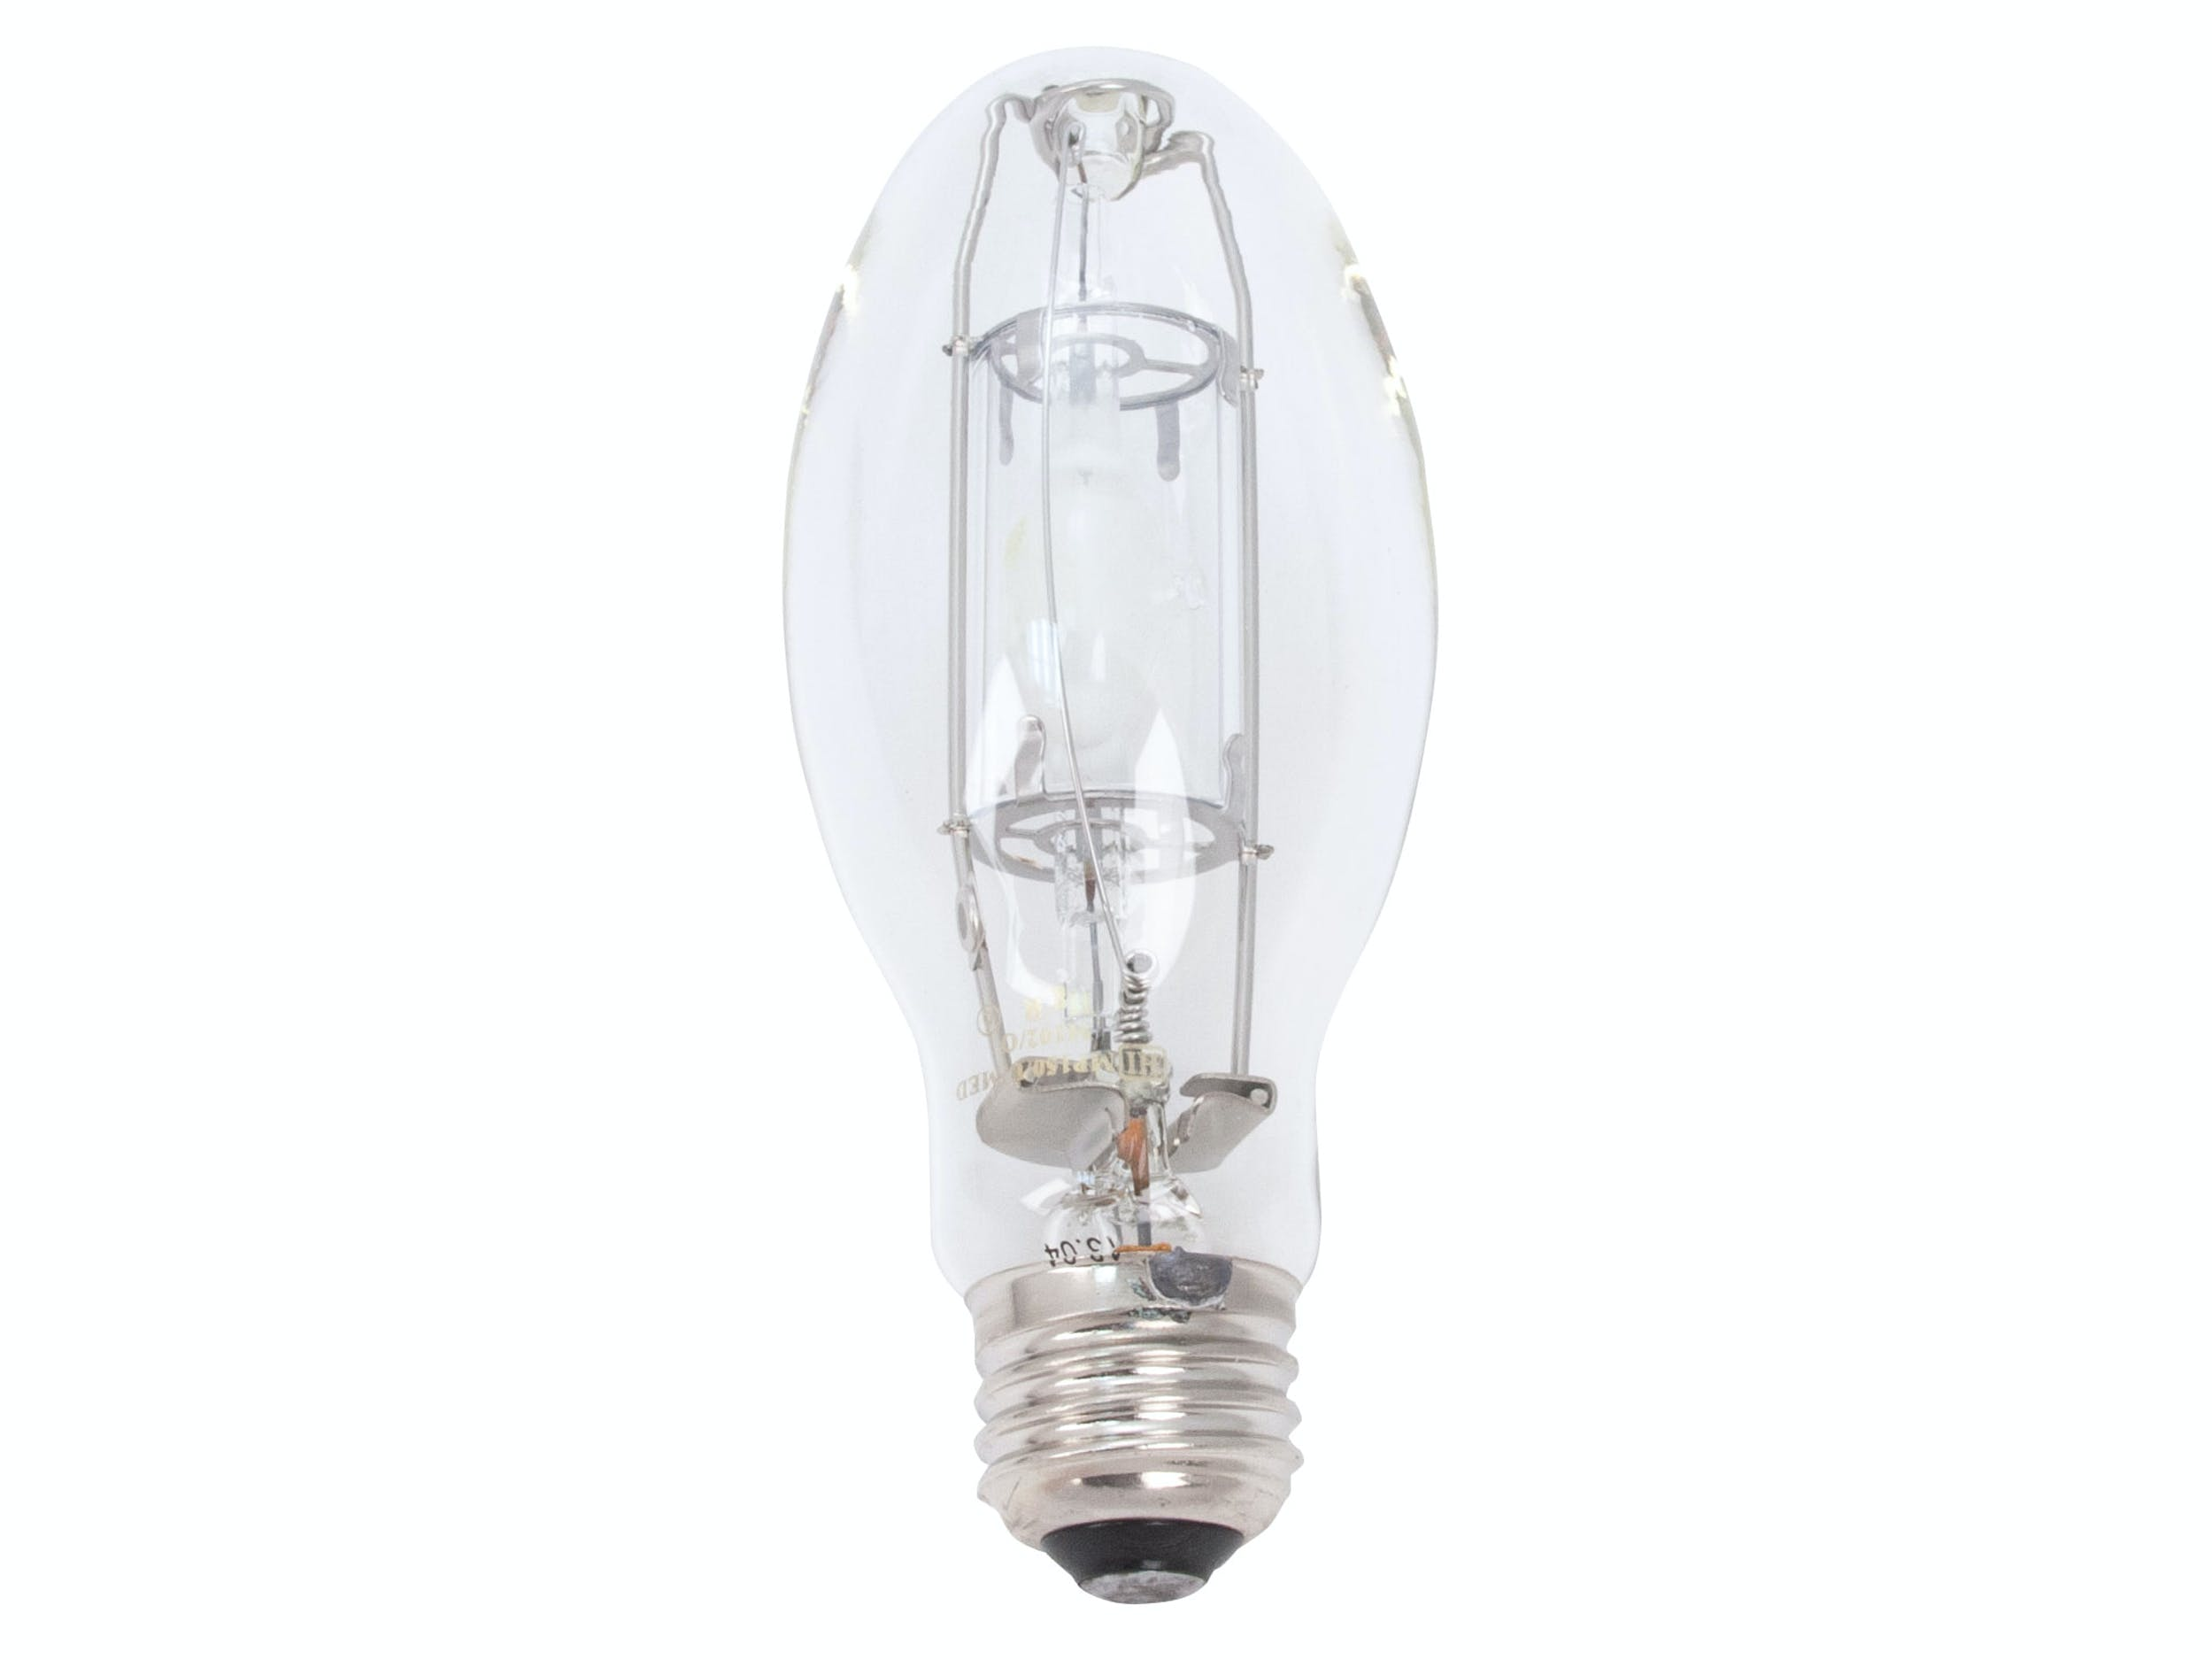 150W Clear Medium Base Protected Metal Halide ED17-P Lamp - sold by RelightDepot.com